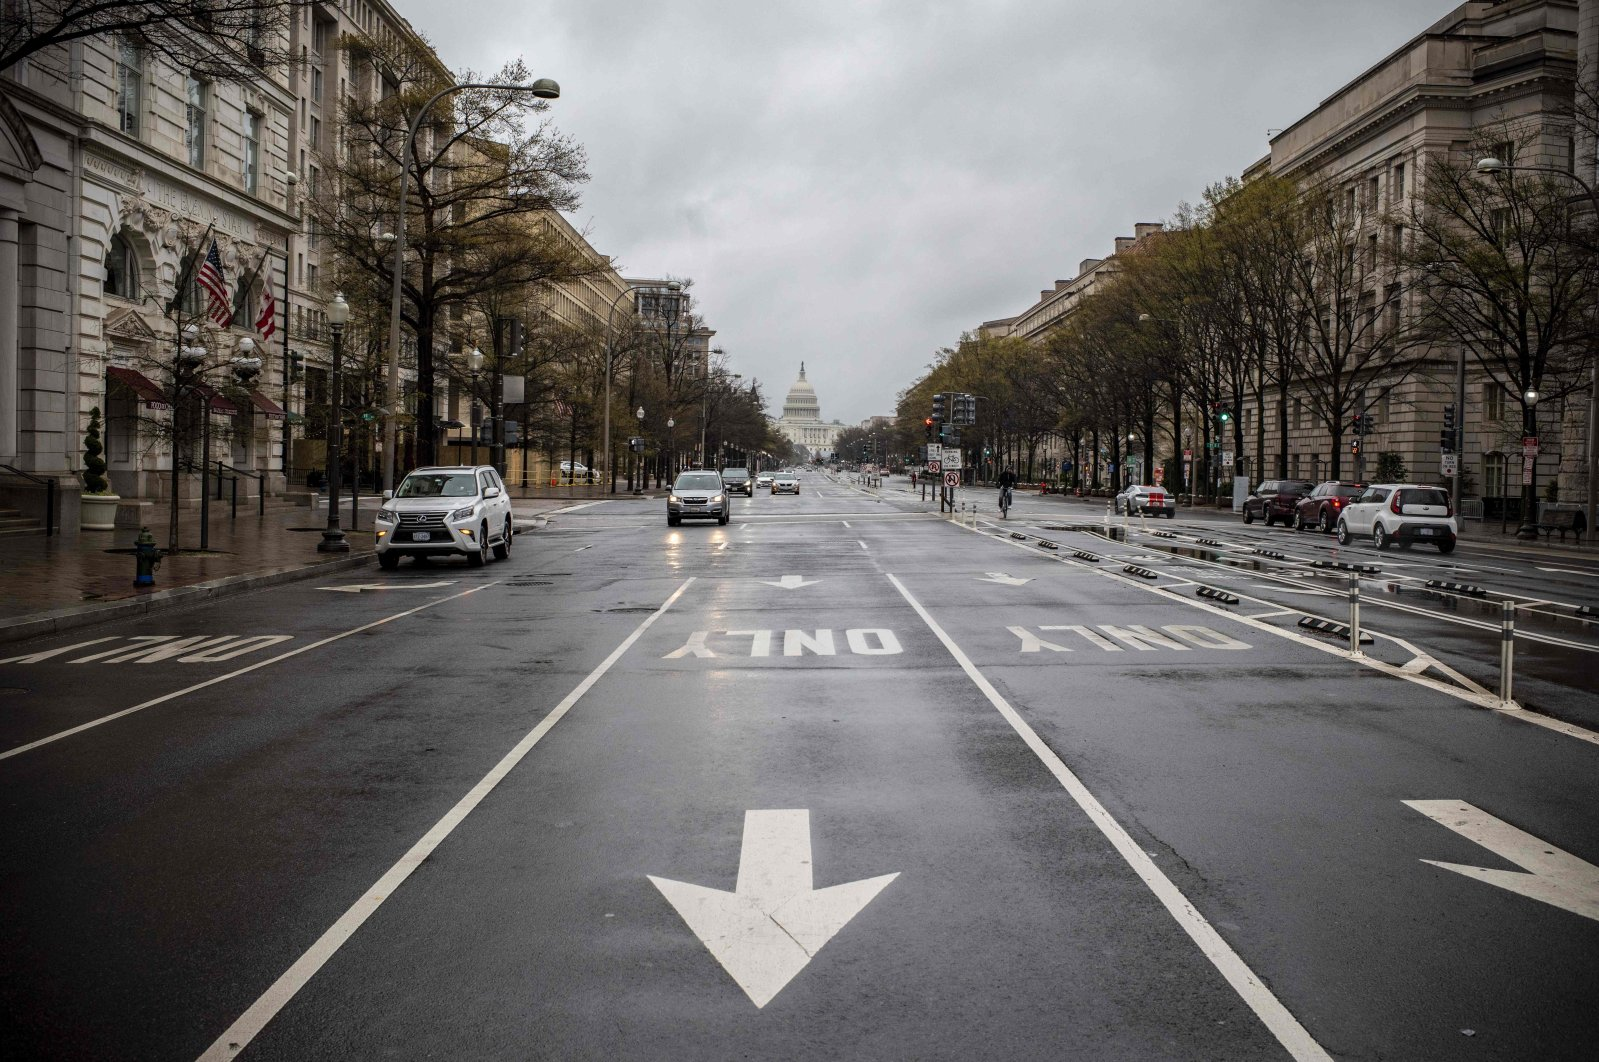 Pennsylvania Avenue, one of the largest avenues of the U.S. capital, is almost deserted during the 6 p.m. usual rush hour in Washington, D.C., Wednesday, March 25, 2020. (AFP Photo)